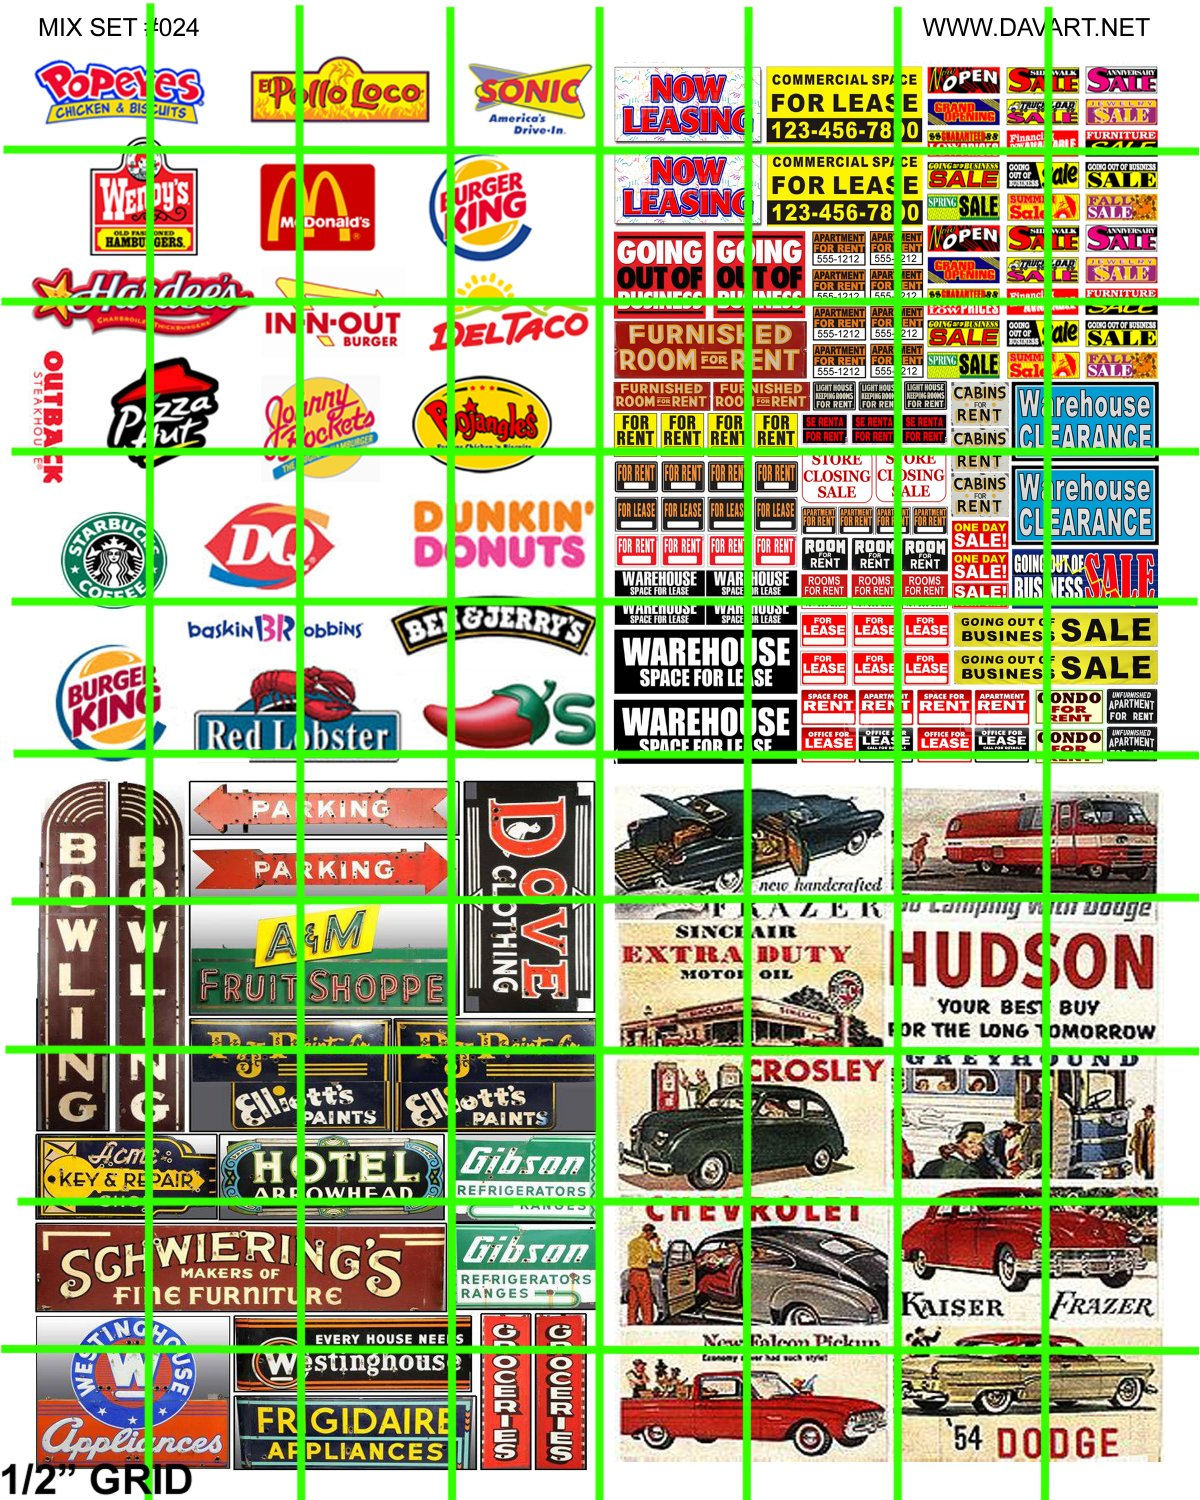 N024 - N SCALE FAST FOOD AUTO ADVERTISING LEASING BOWLING SIGNAGE